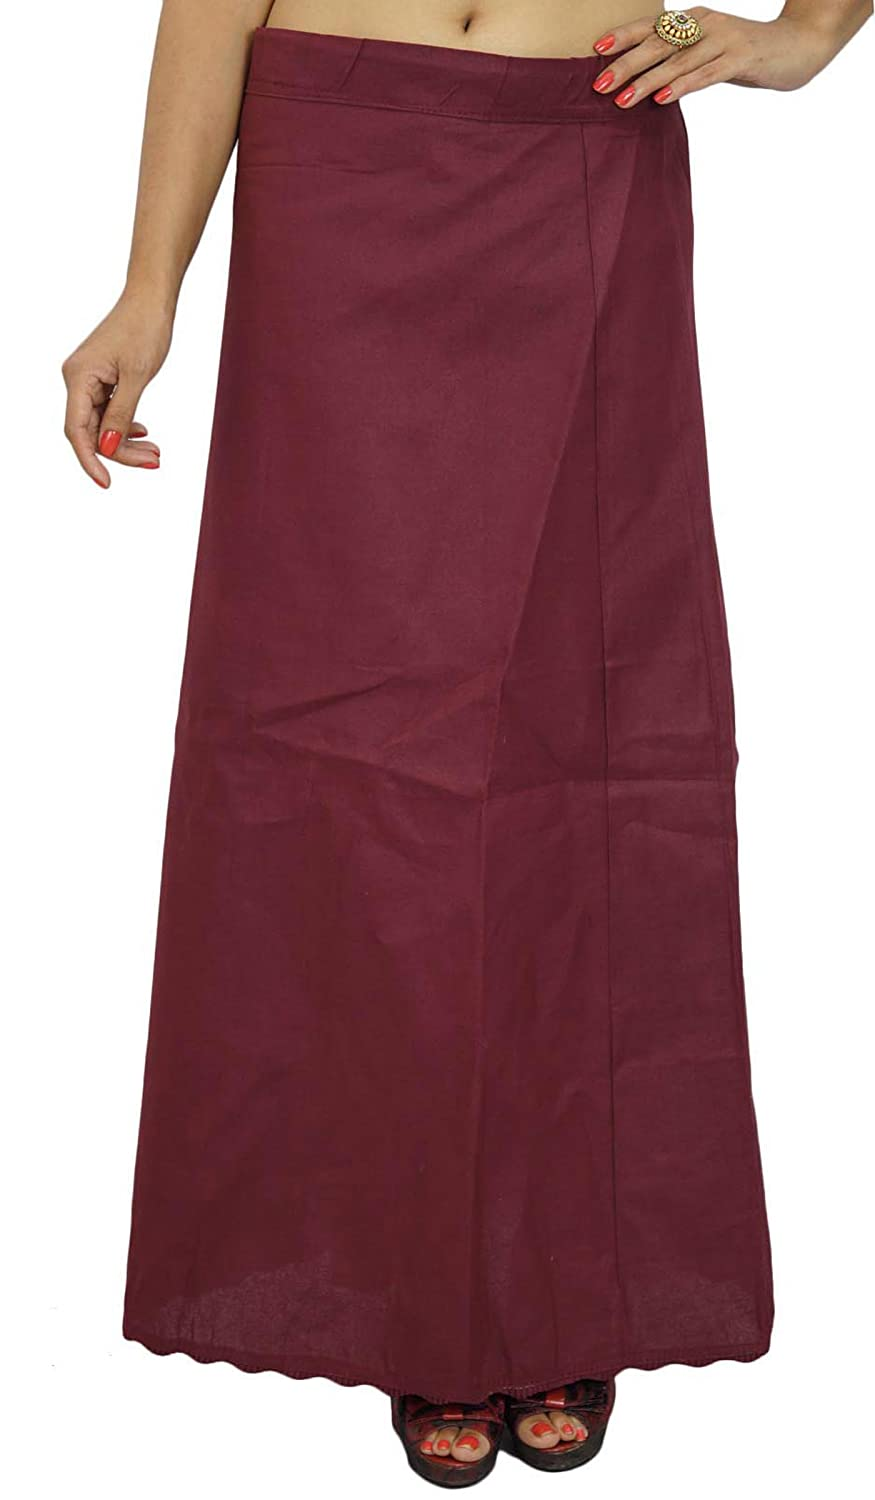 Bollywood Cotton Solid Petticoat Underskirt Indian Lining For Sari ibaexports PTC64A